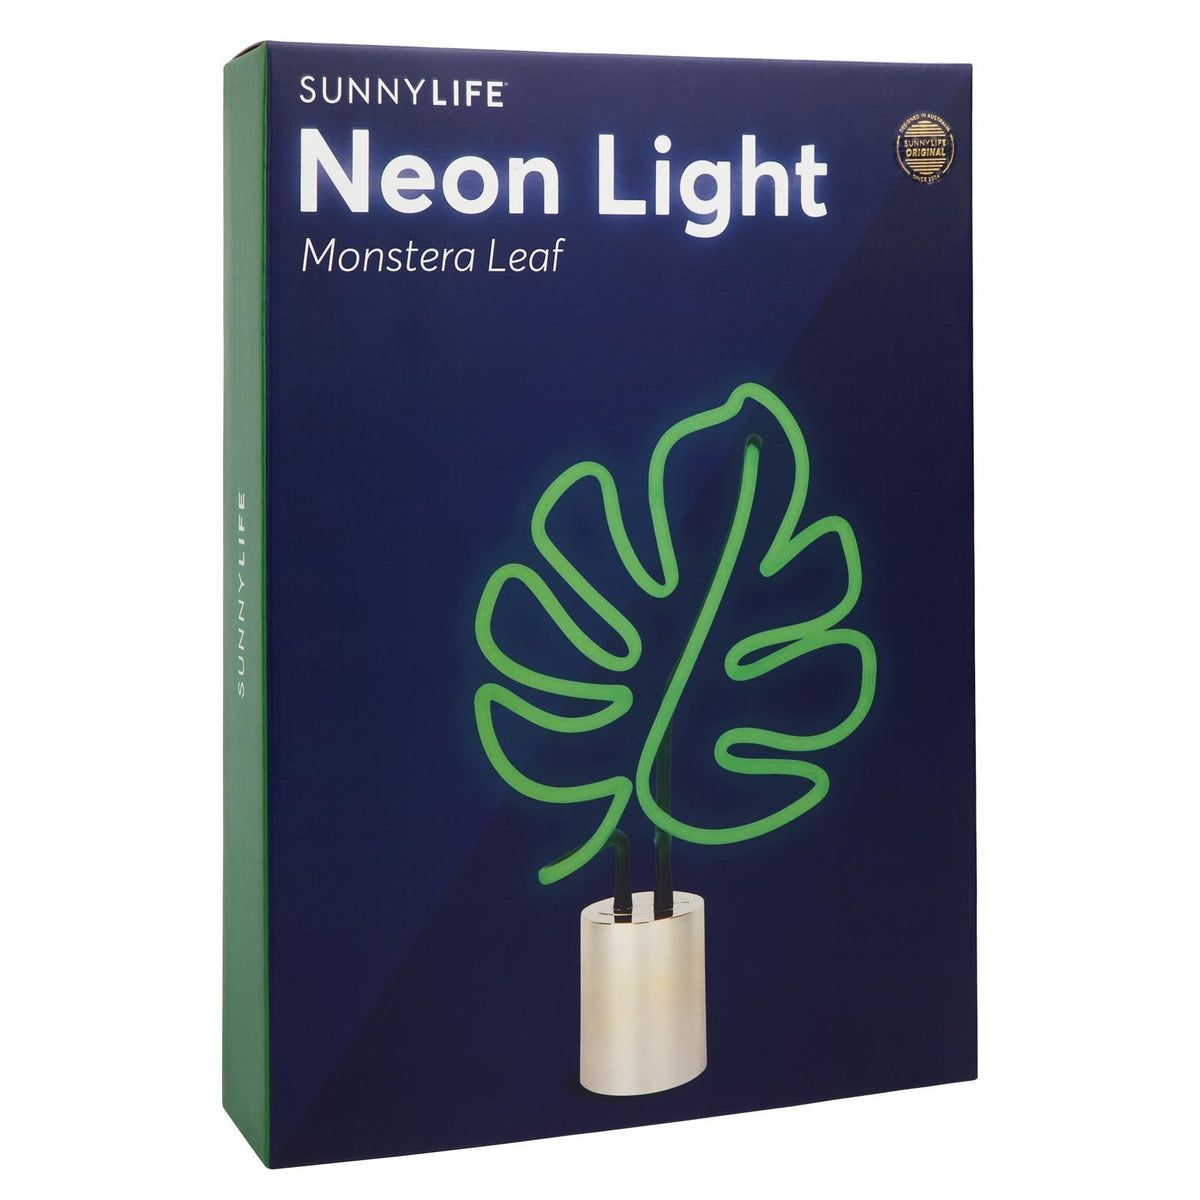 Sunnylife Neon Light Large AUS | Monstera Leaf